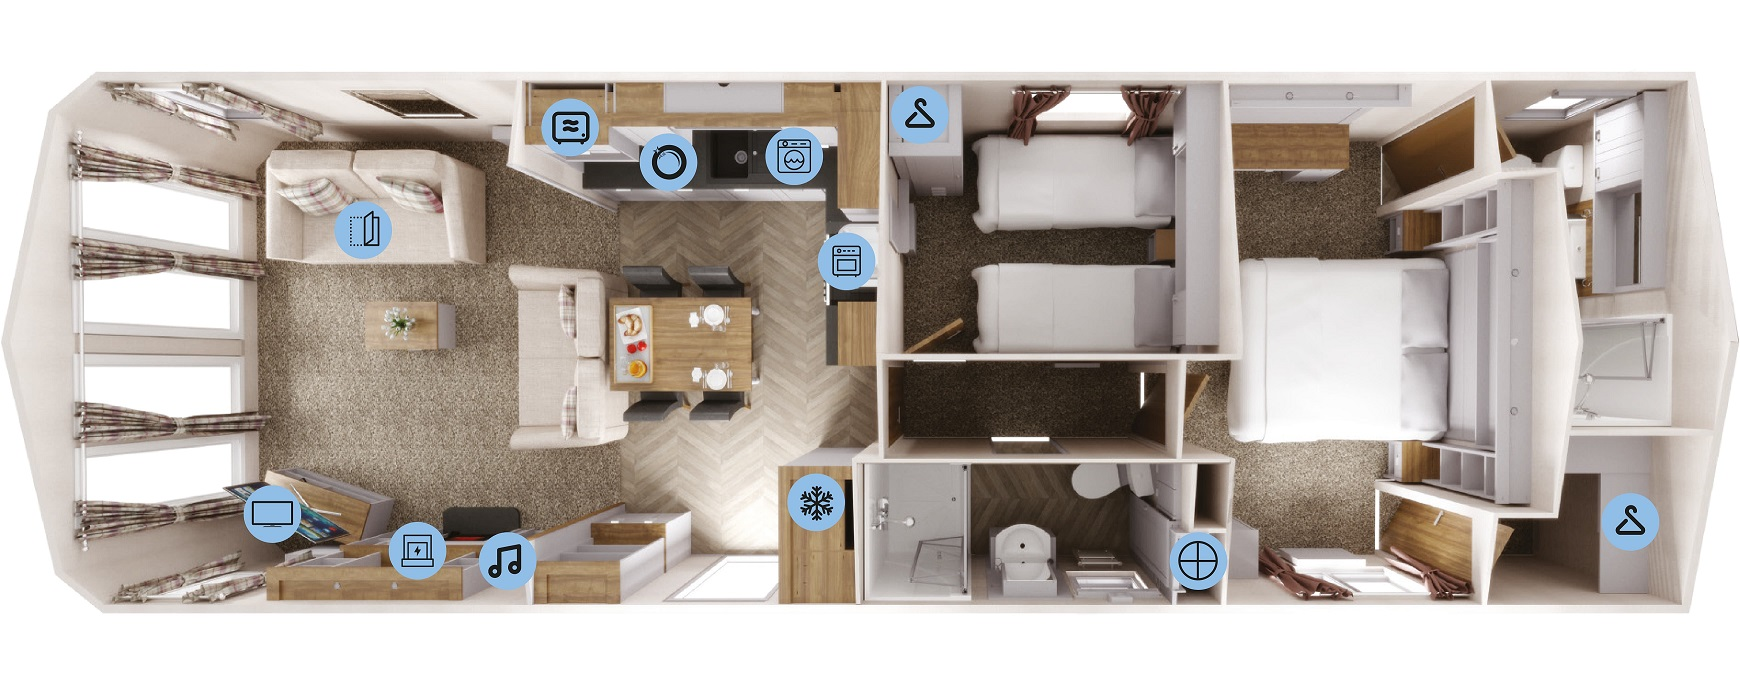 Willerby Sheraton: New Static Caravans and Holiday Homes for Sale, Available at Factory Large Image 4